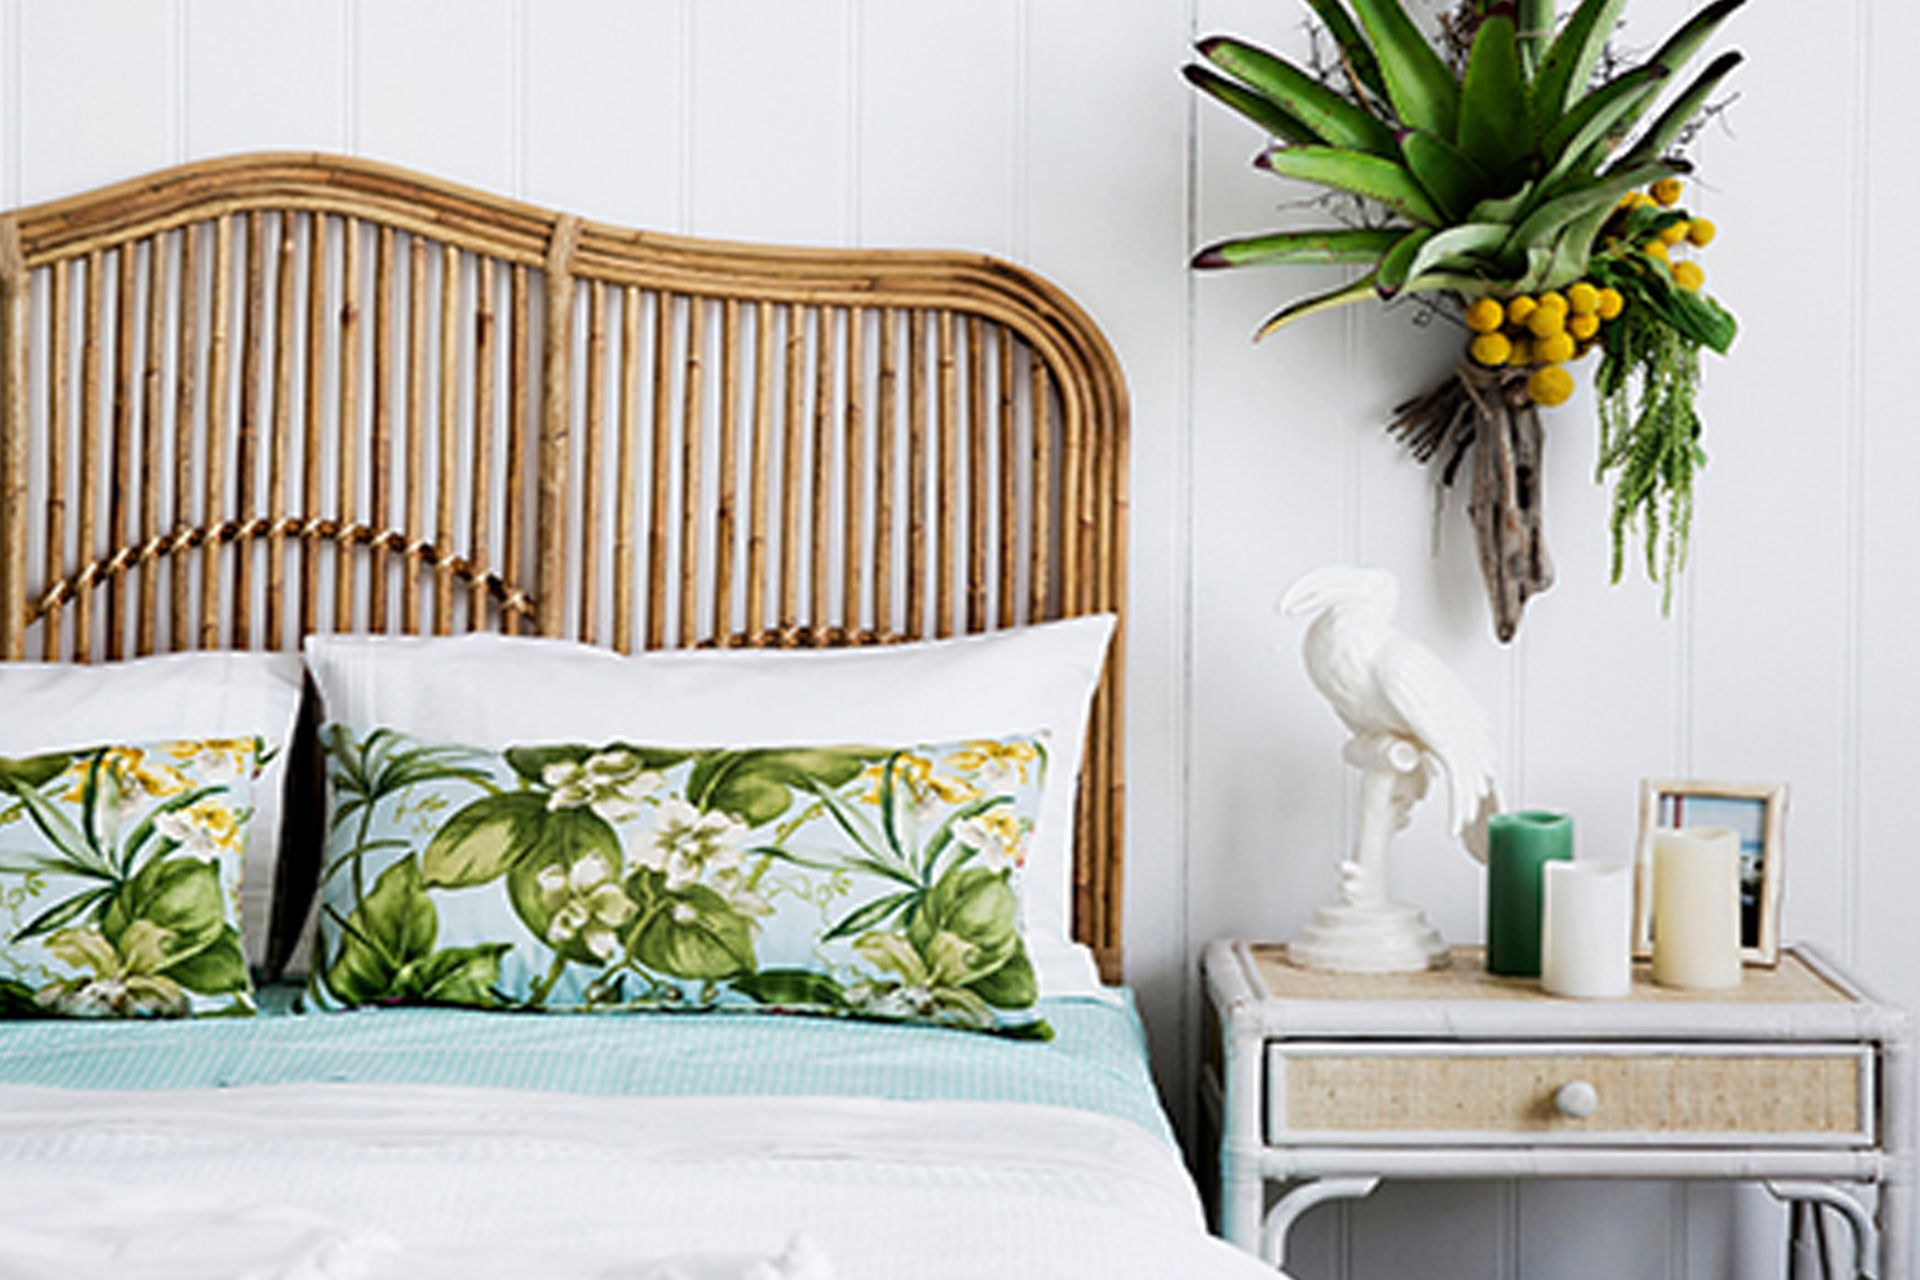 Brookhaven Bedhead Naturally Cane Rattan and Wicker